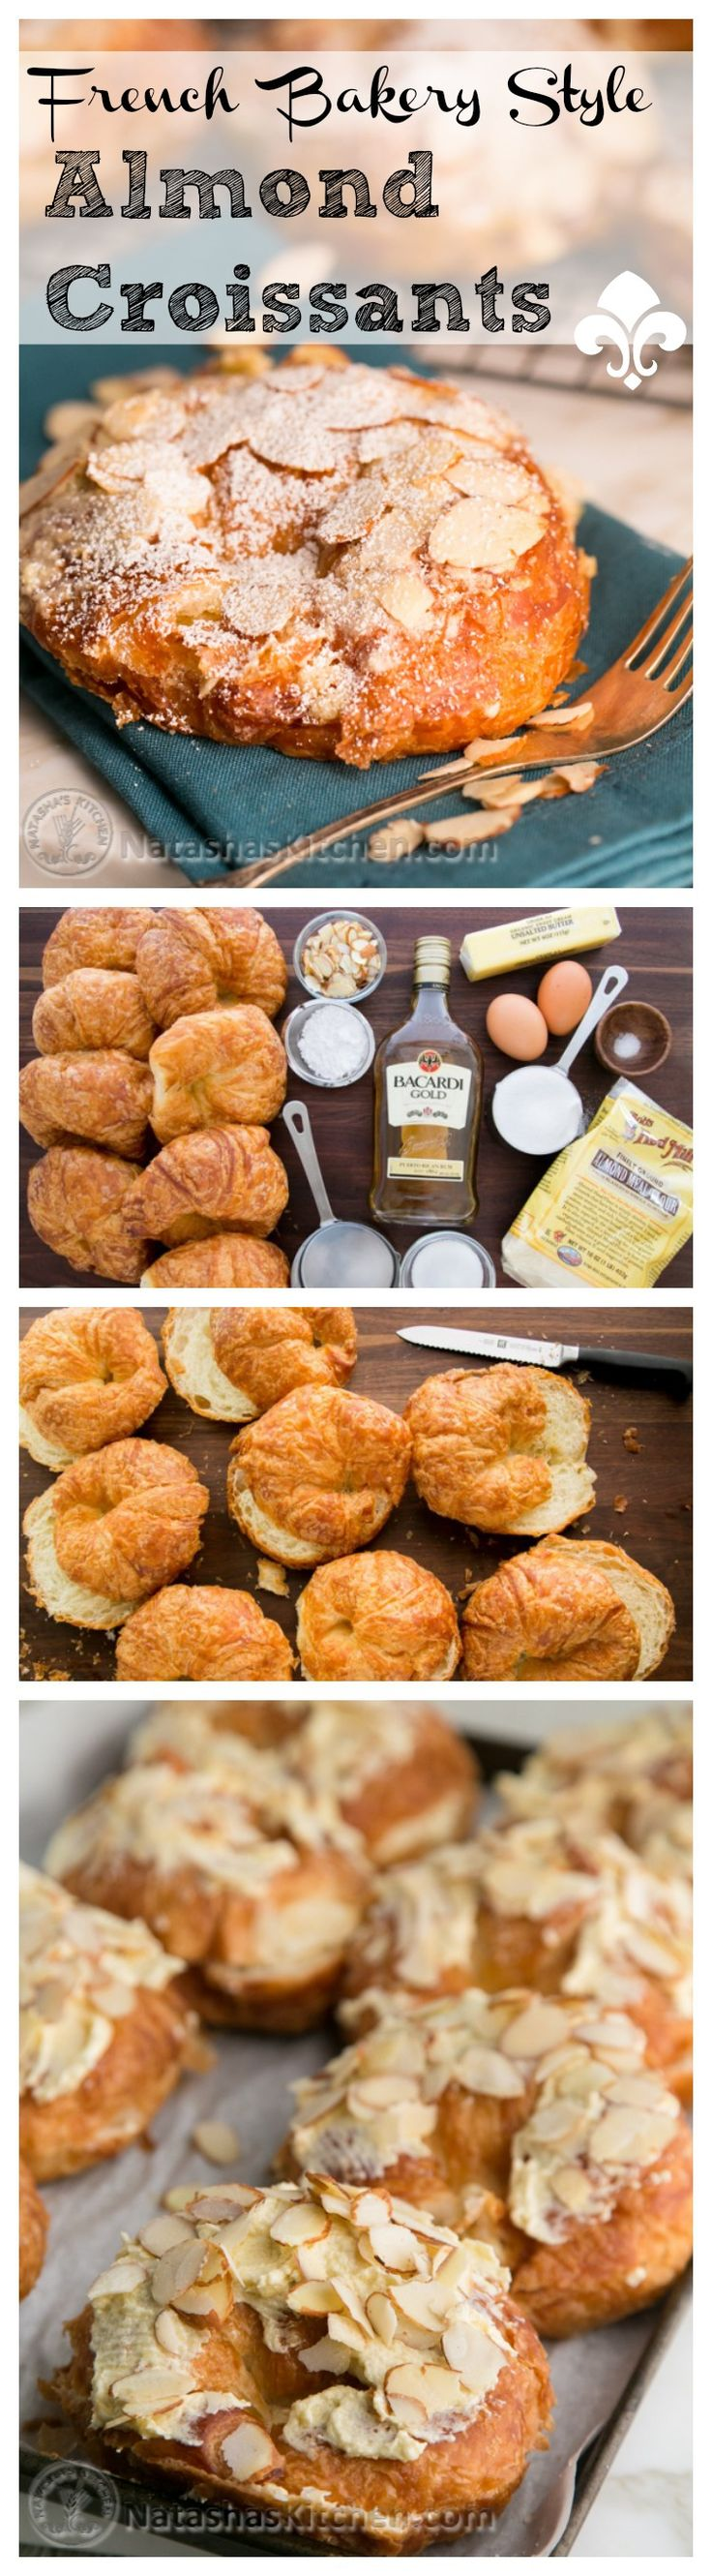 A Fantastic Way To Use Up Dayold Croissants Copycat French Bakery Recipe